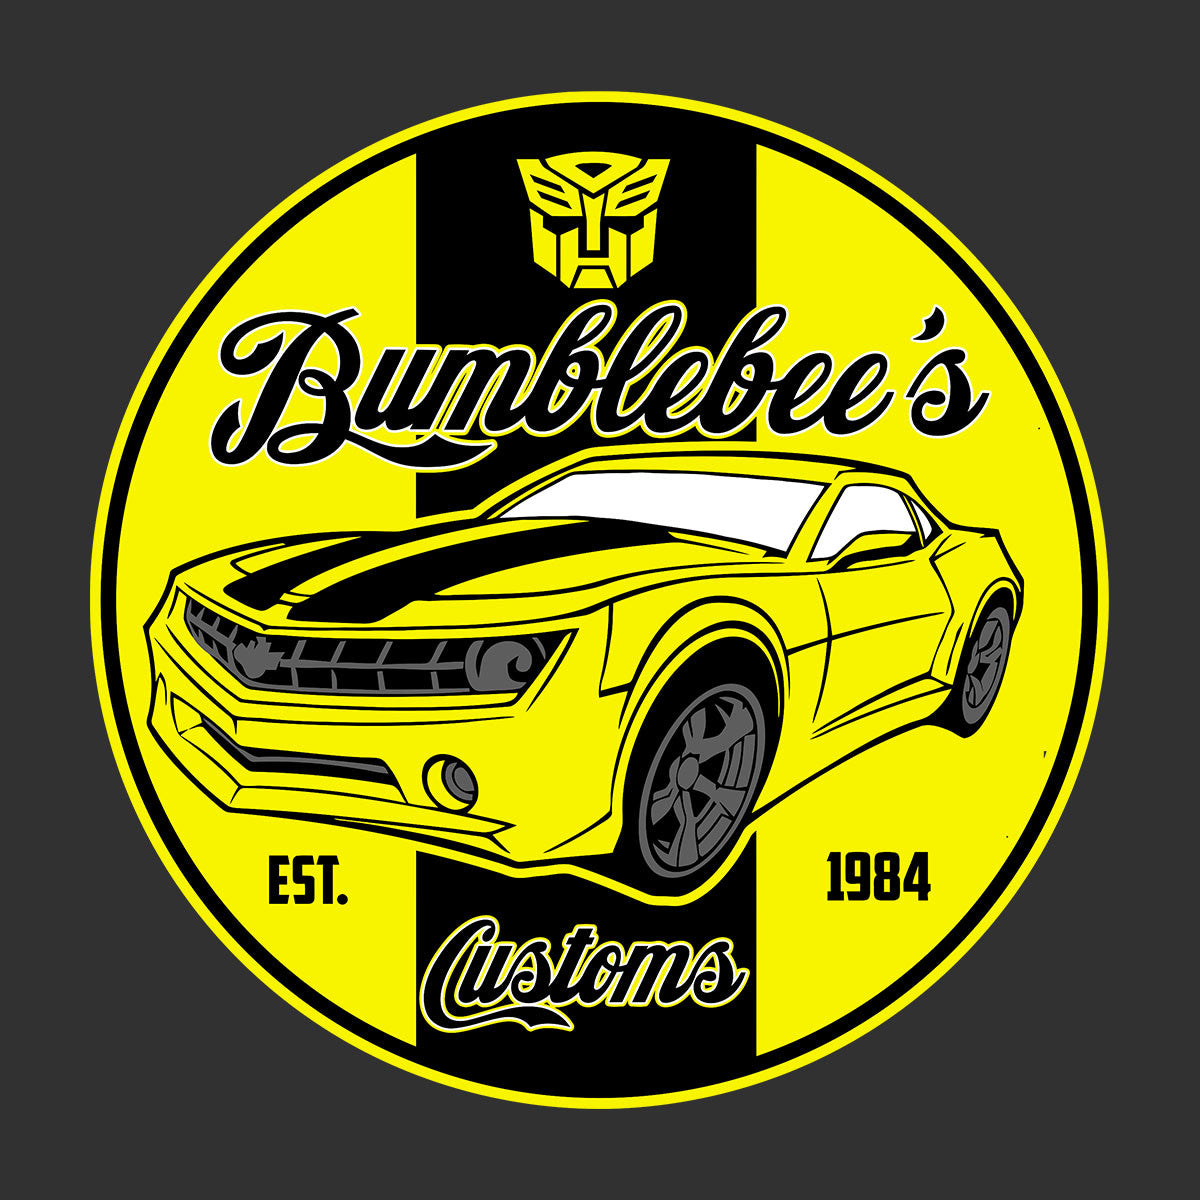 Bumblebees Customes Transformers